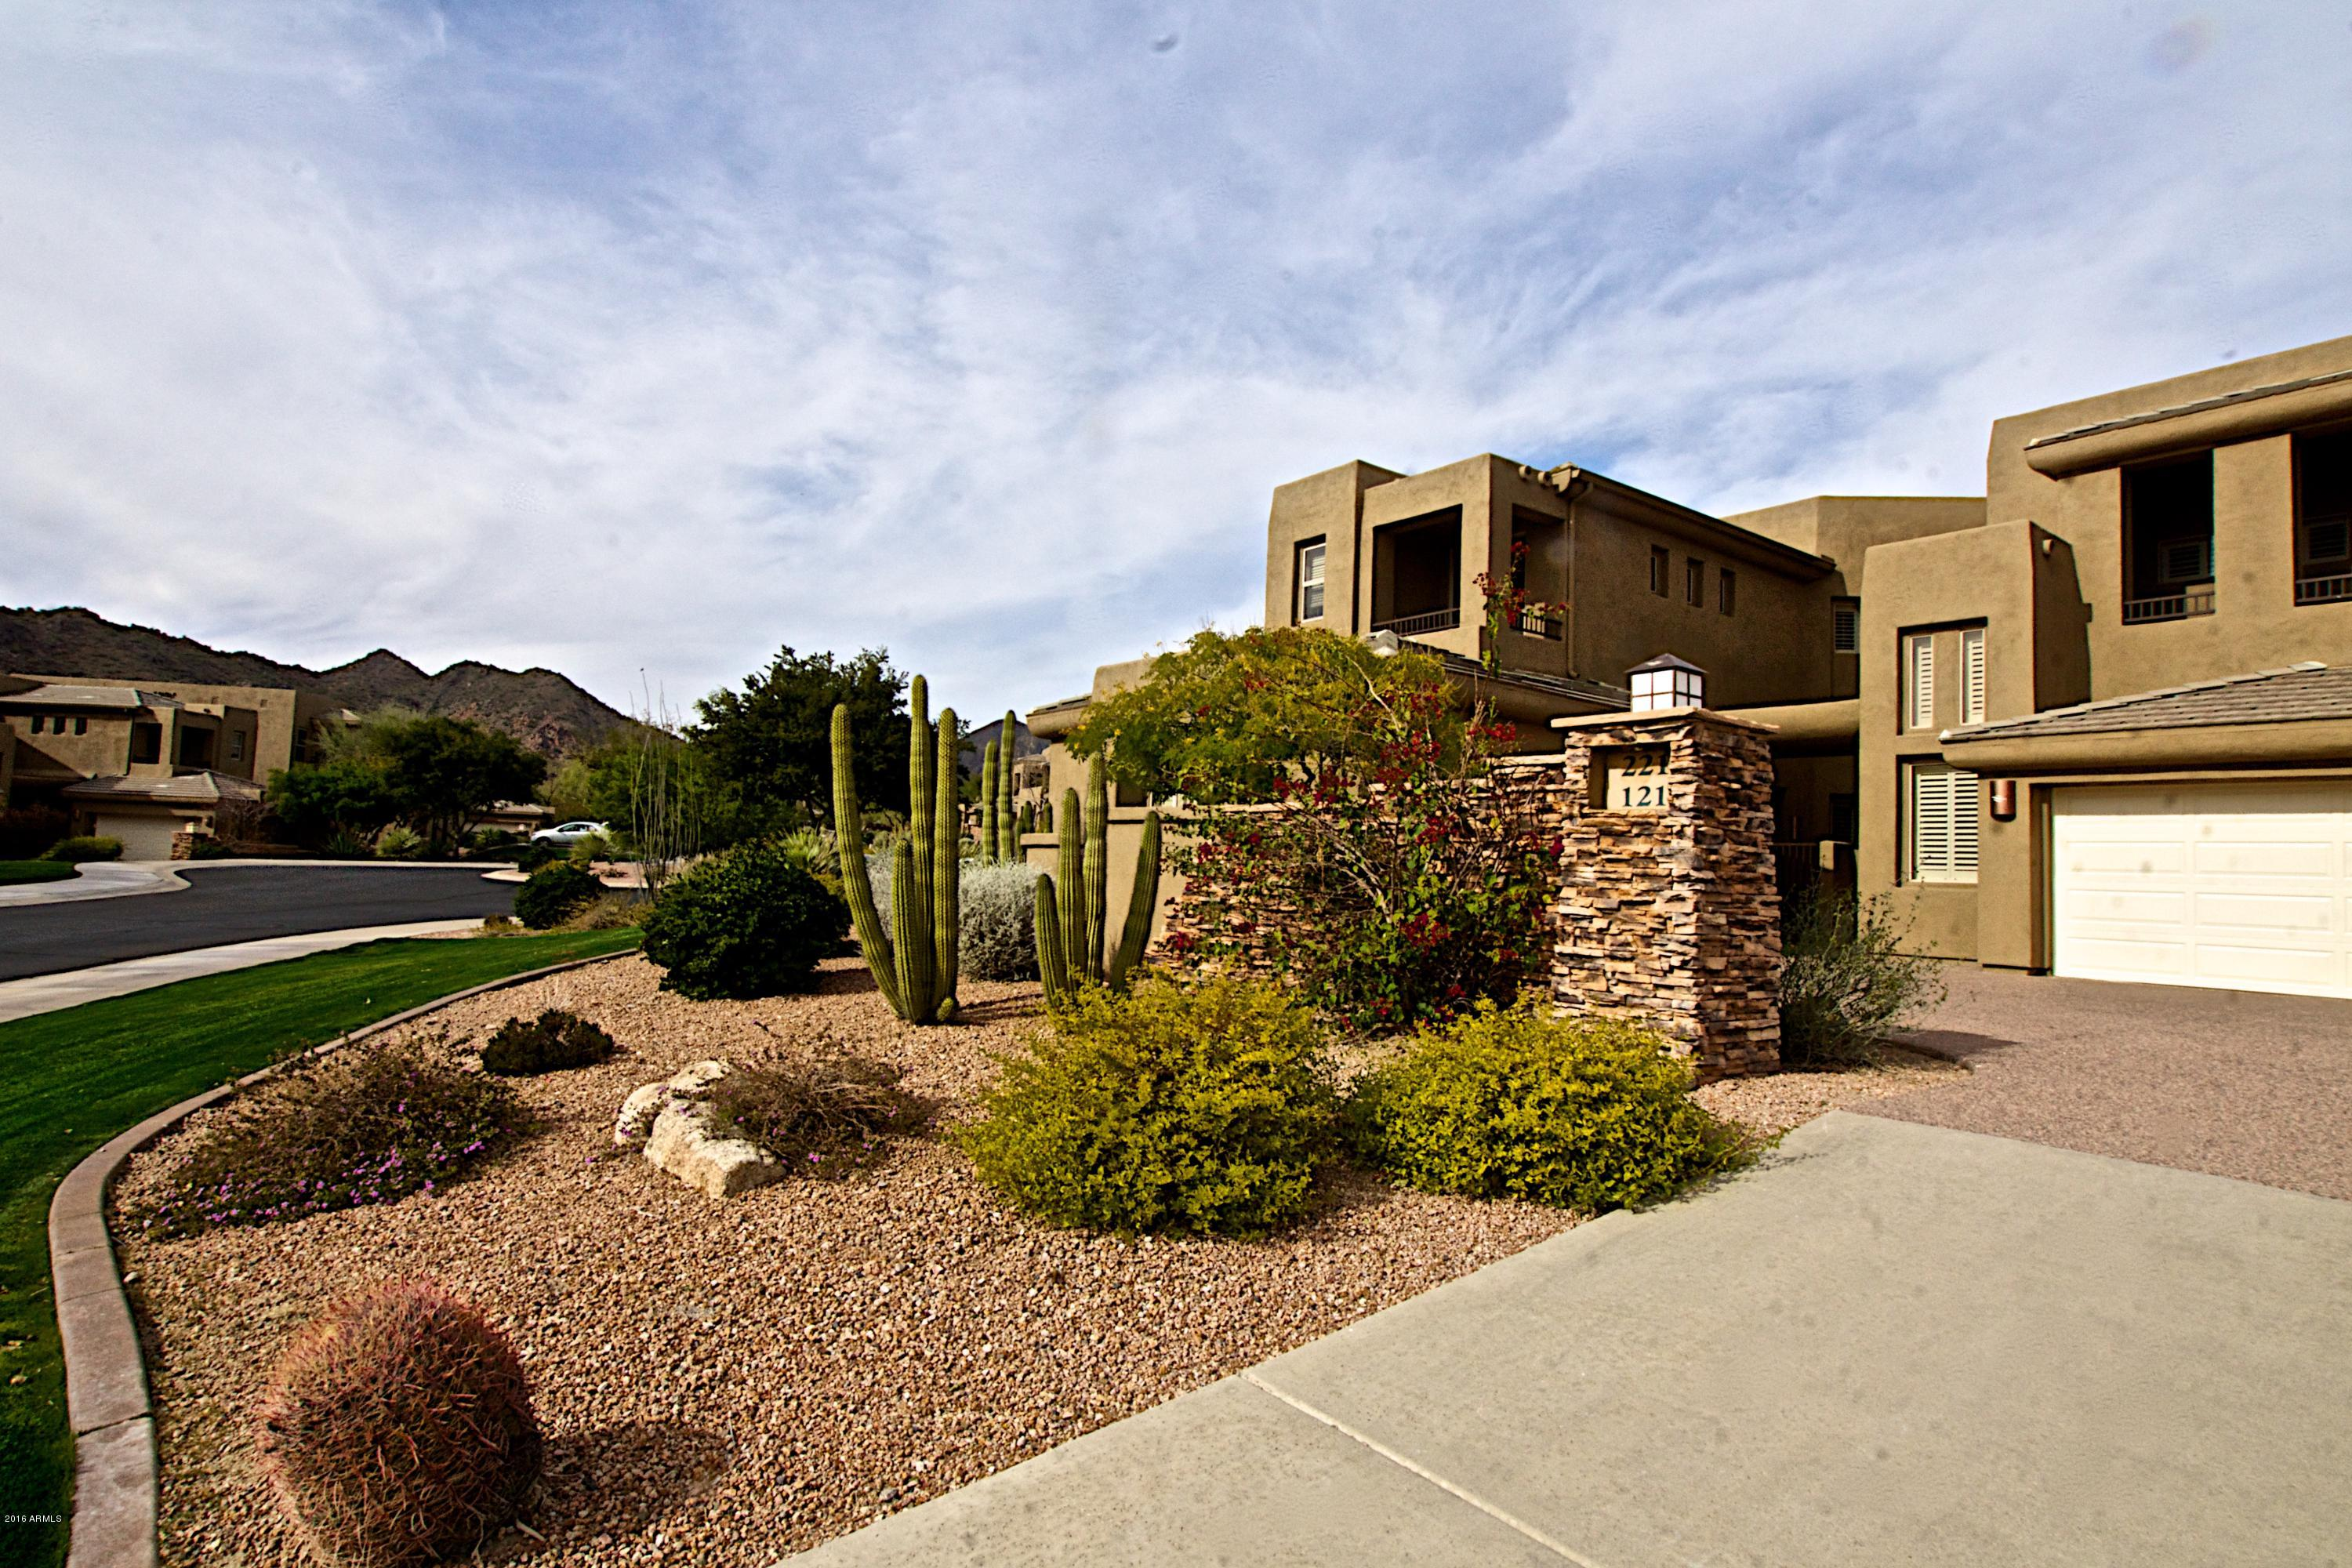 14850 E Grandview Drive E, Unit 221, Fountain Hills AZ 85268 - Photo 1